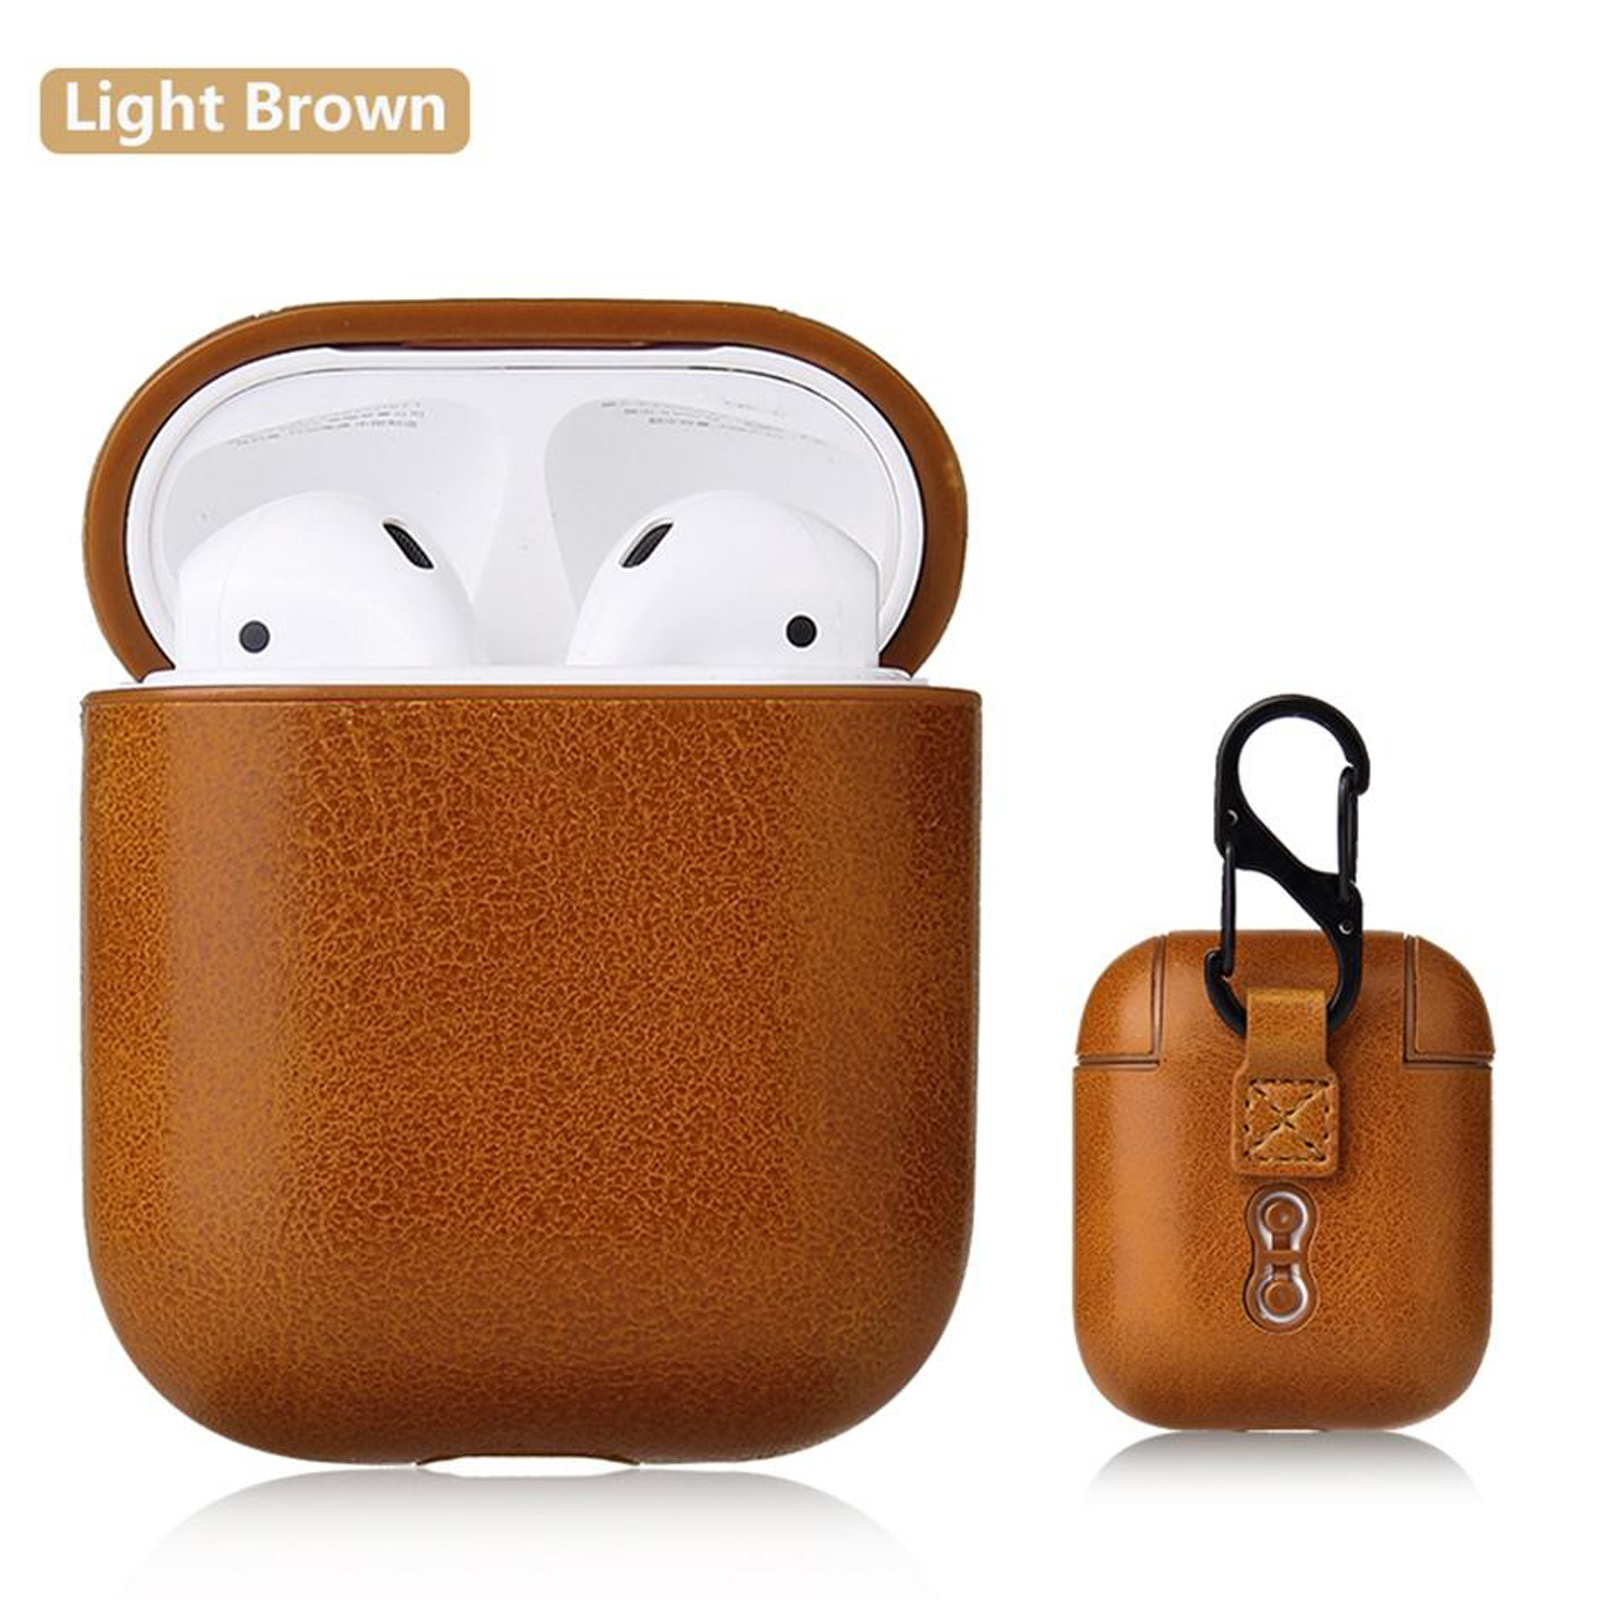 New-Leather-Soft-Skin-Case-For-Apple-Airpods-1-2-1st-2nd-Gen-Earphones-PU-Cover thumbnail 34